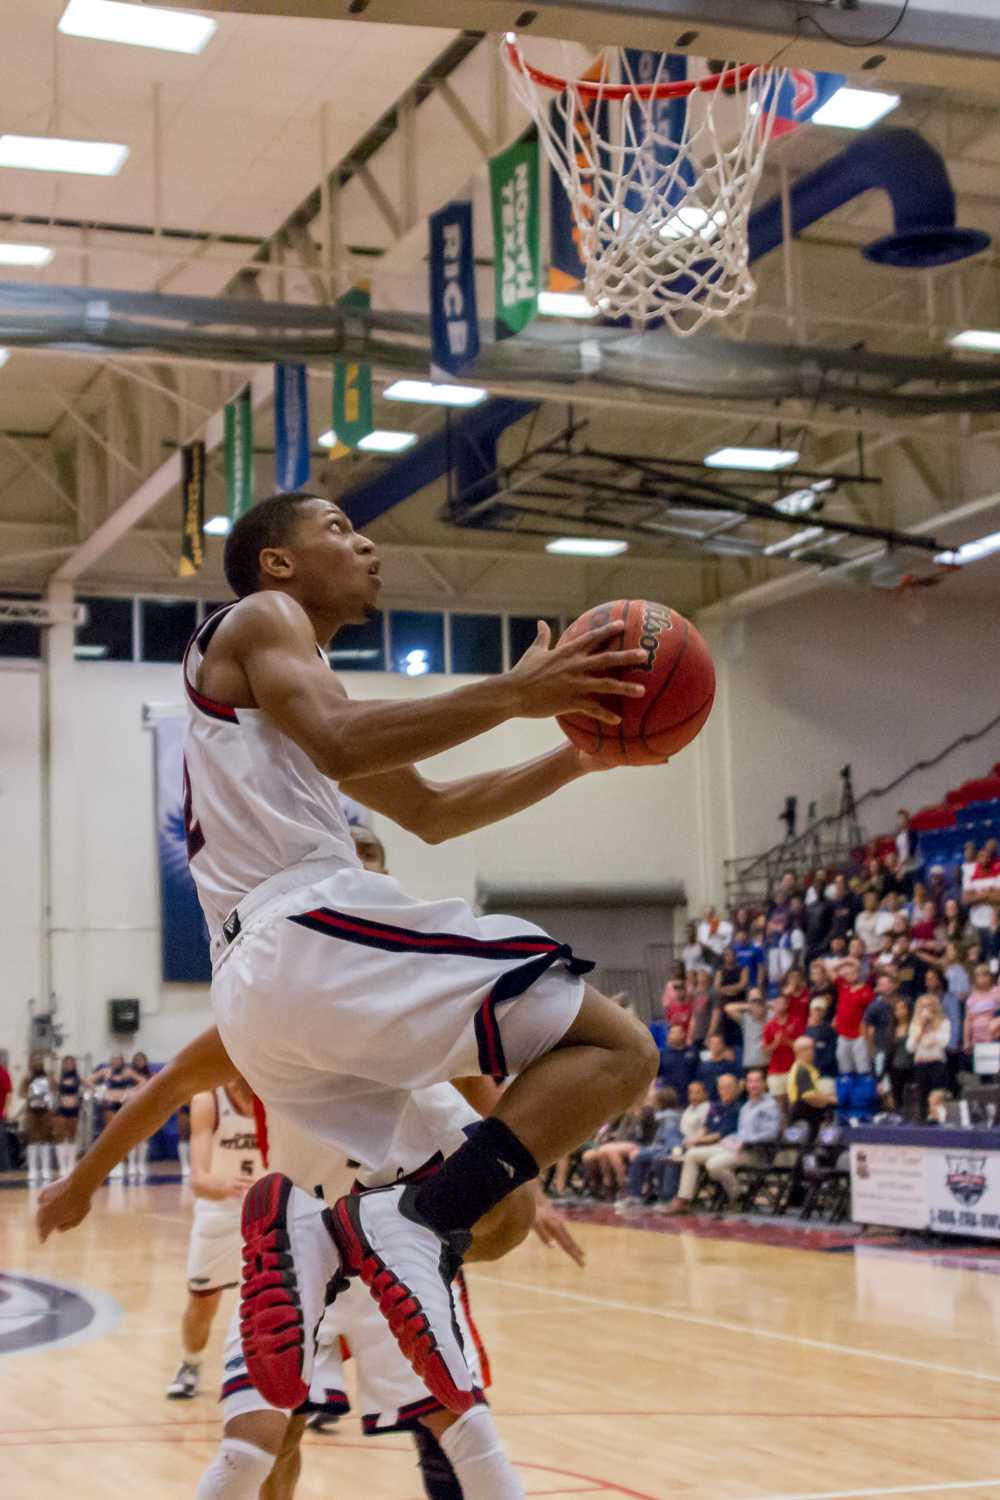 Marquan Botley attempts a reverse layup. The sophomore guard scored 11 points in FAU's 63-56 loss to UTEP on Feb 5.